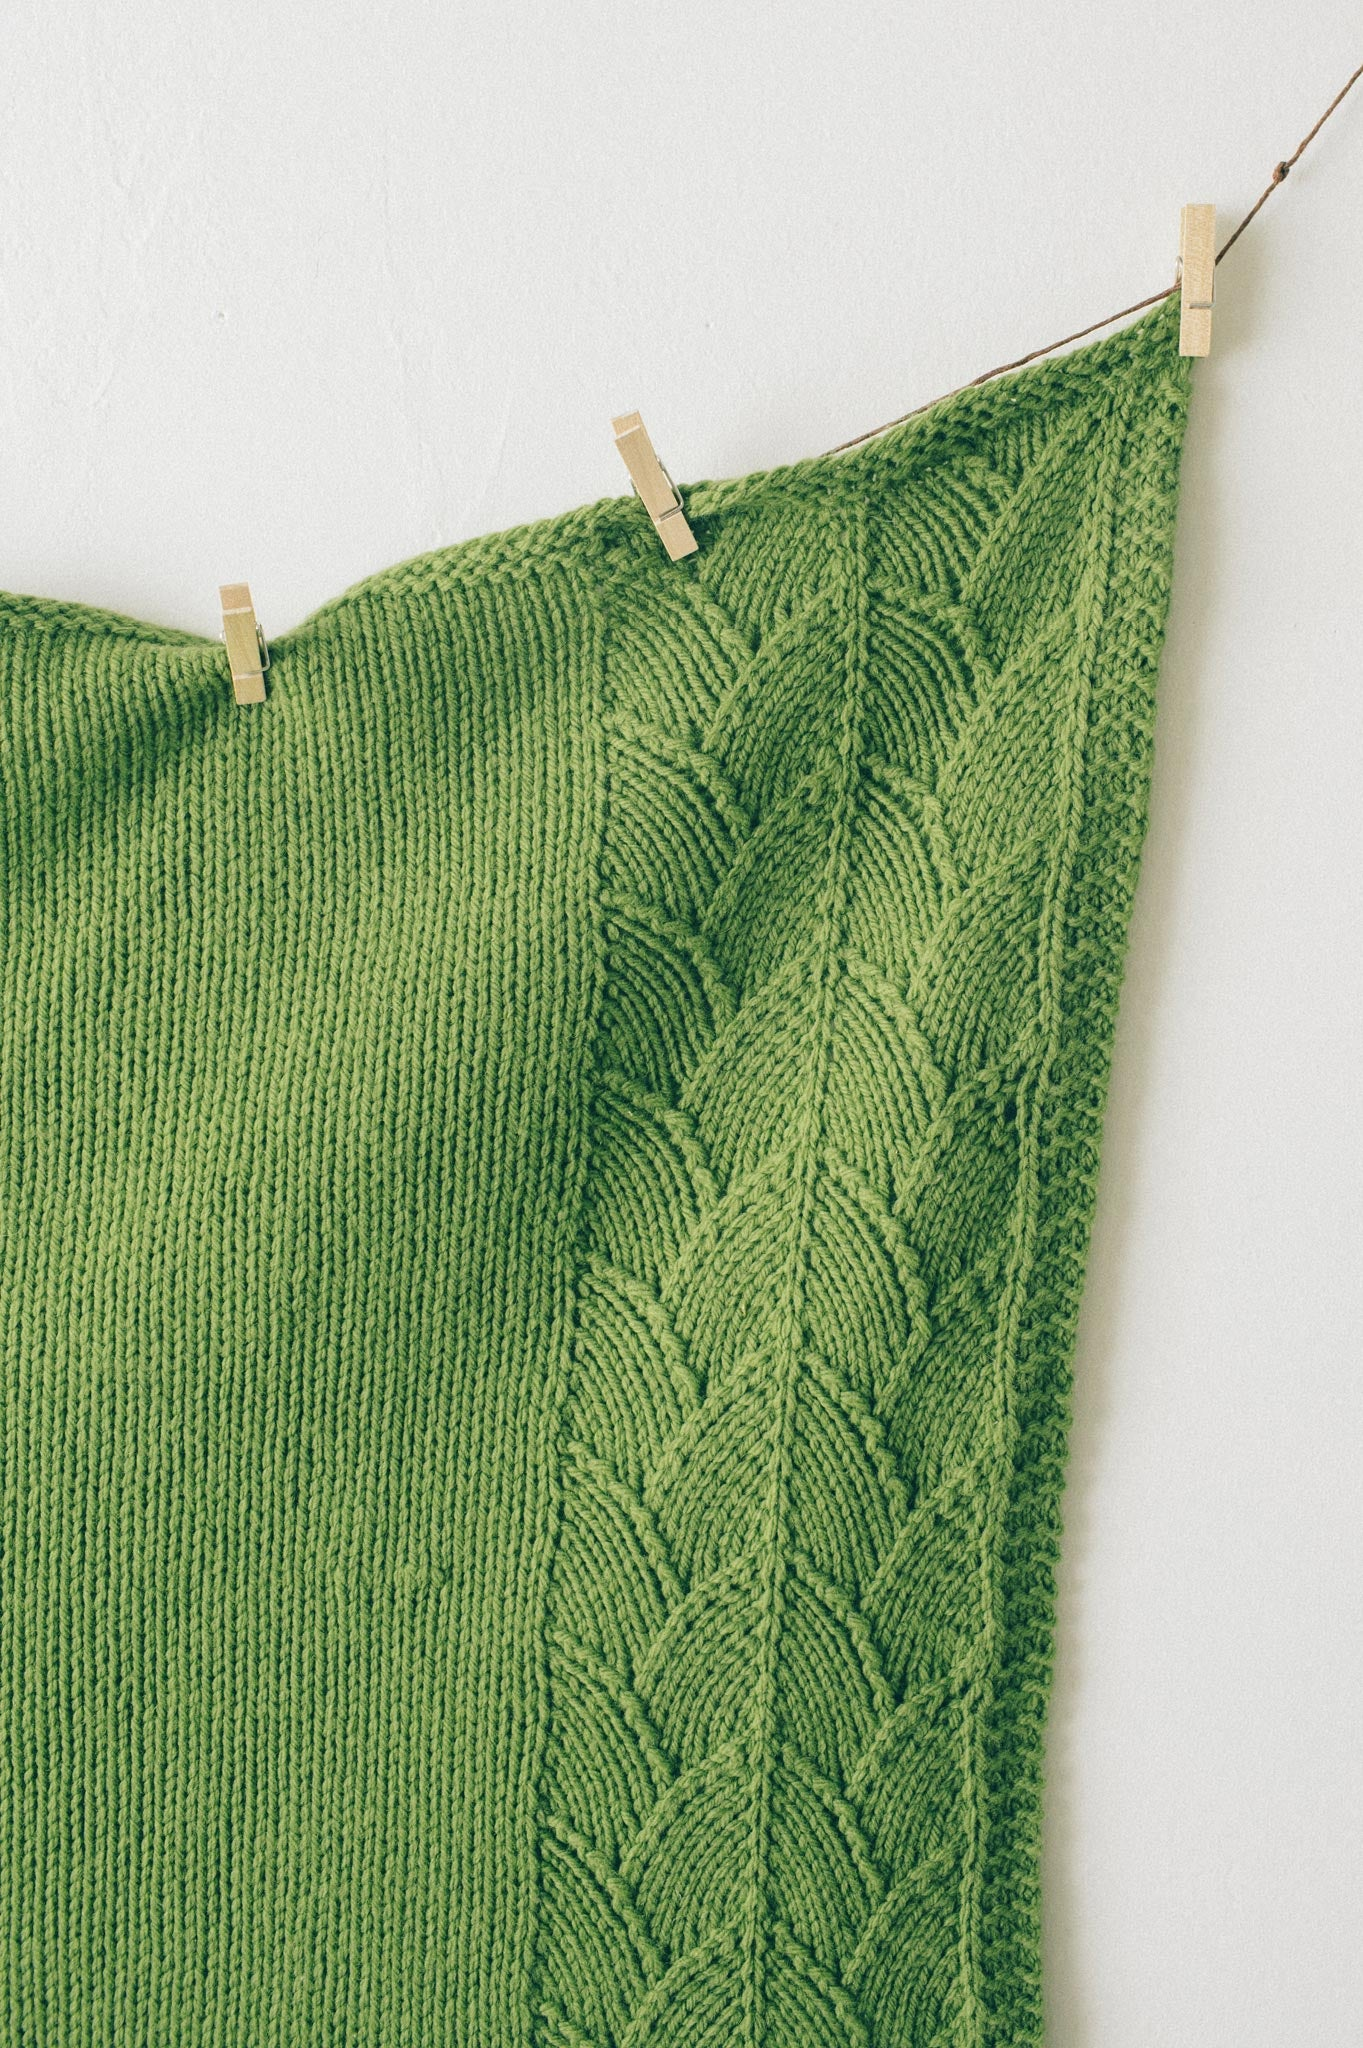 Sweet leaf baby blanket knitting pattern quince and co sweet leaf blanket bankloansurffo Gallery